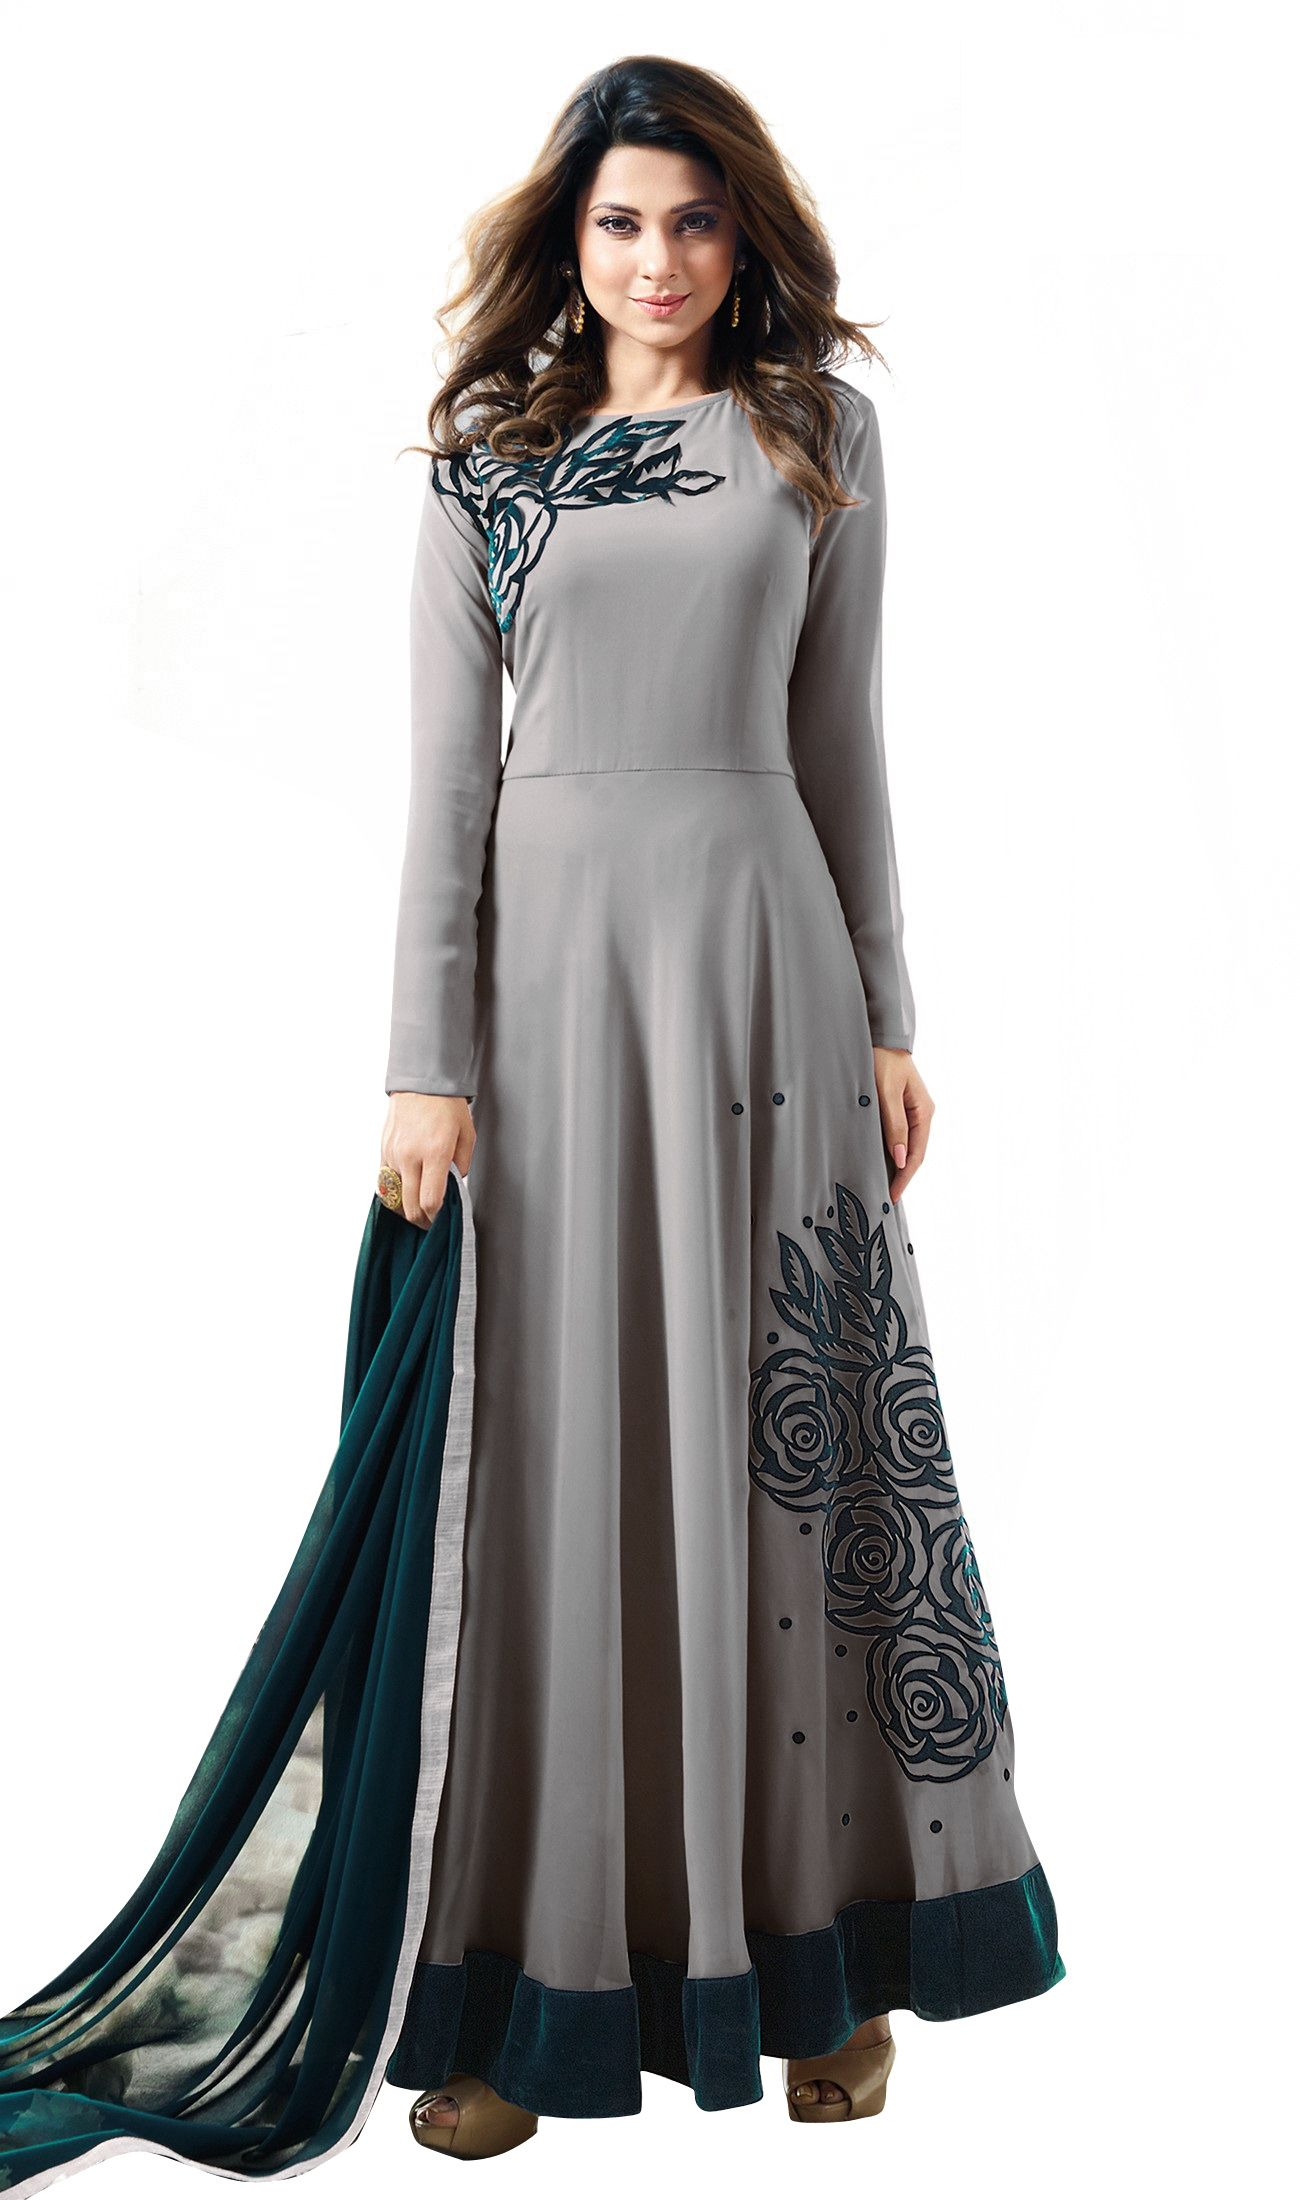 1cc0d766a2 admiria Grey and Black Georgette Anarkali Gown Semi-Stitched Suit - Buy  admiria Grey and Black Georgette Anarkali Gown Semi-Stitched Suit Online at  Best ...